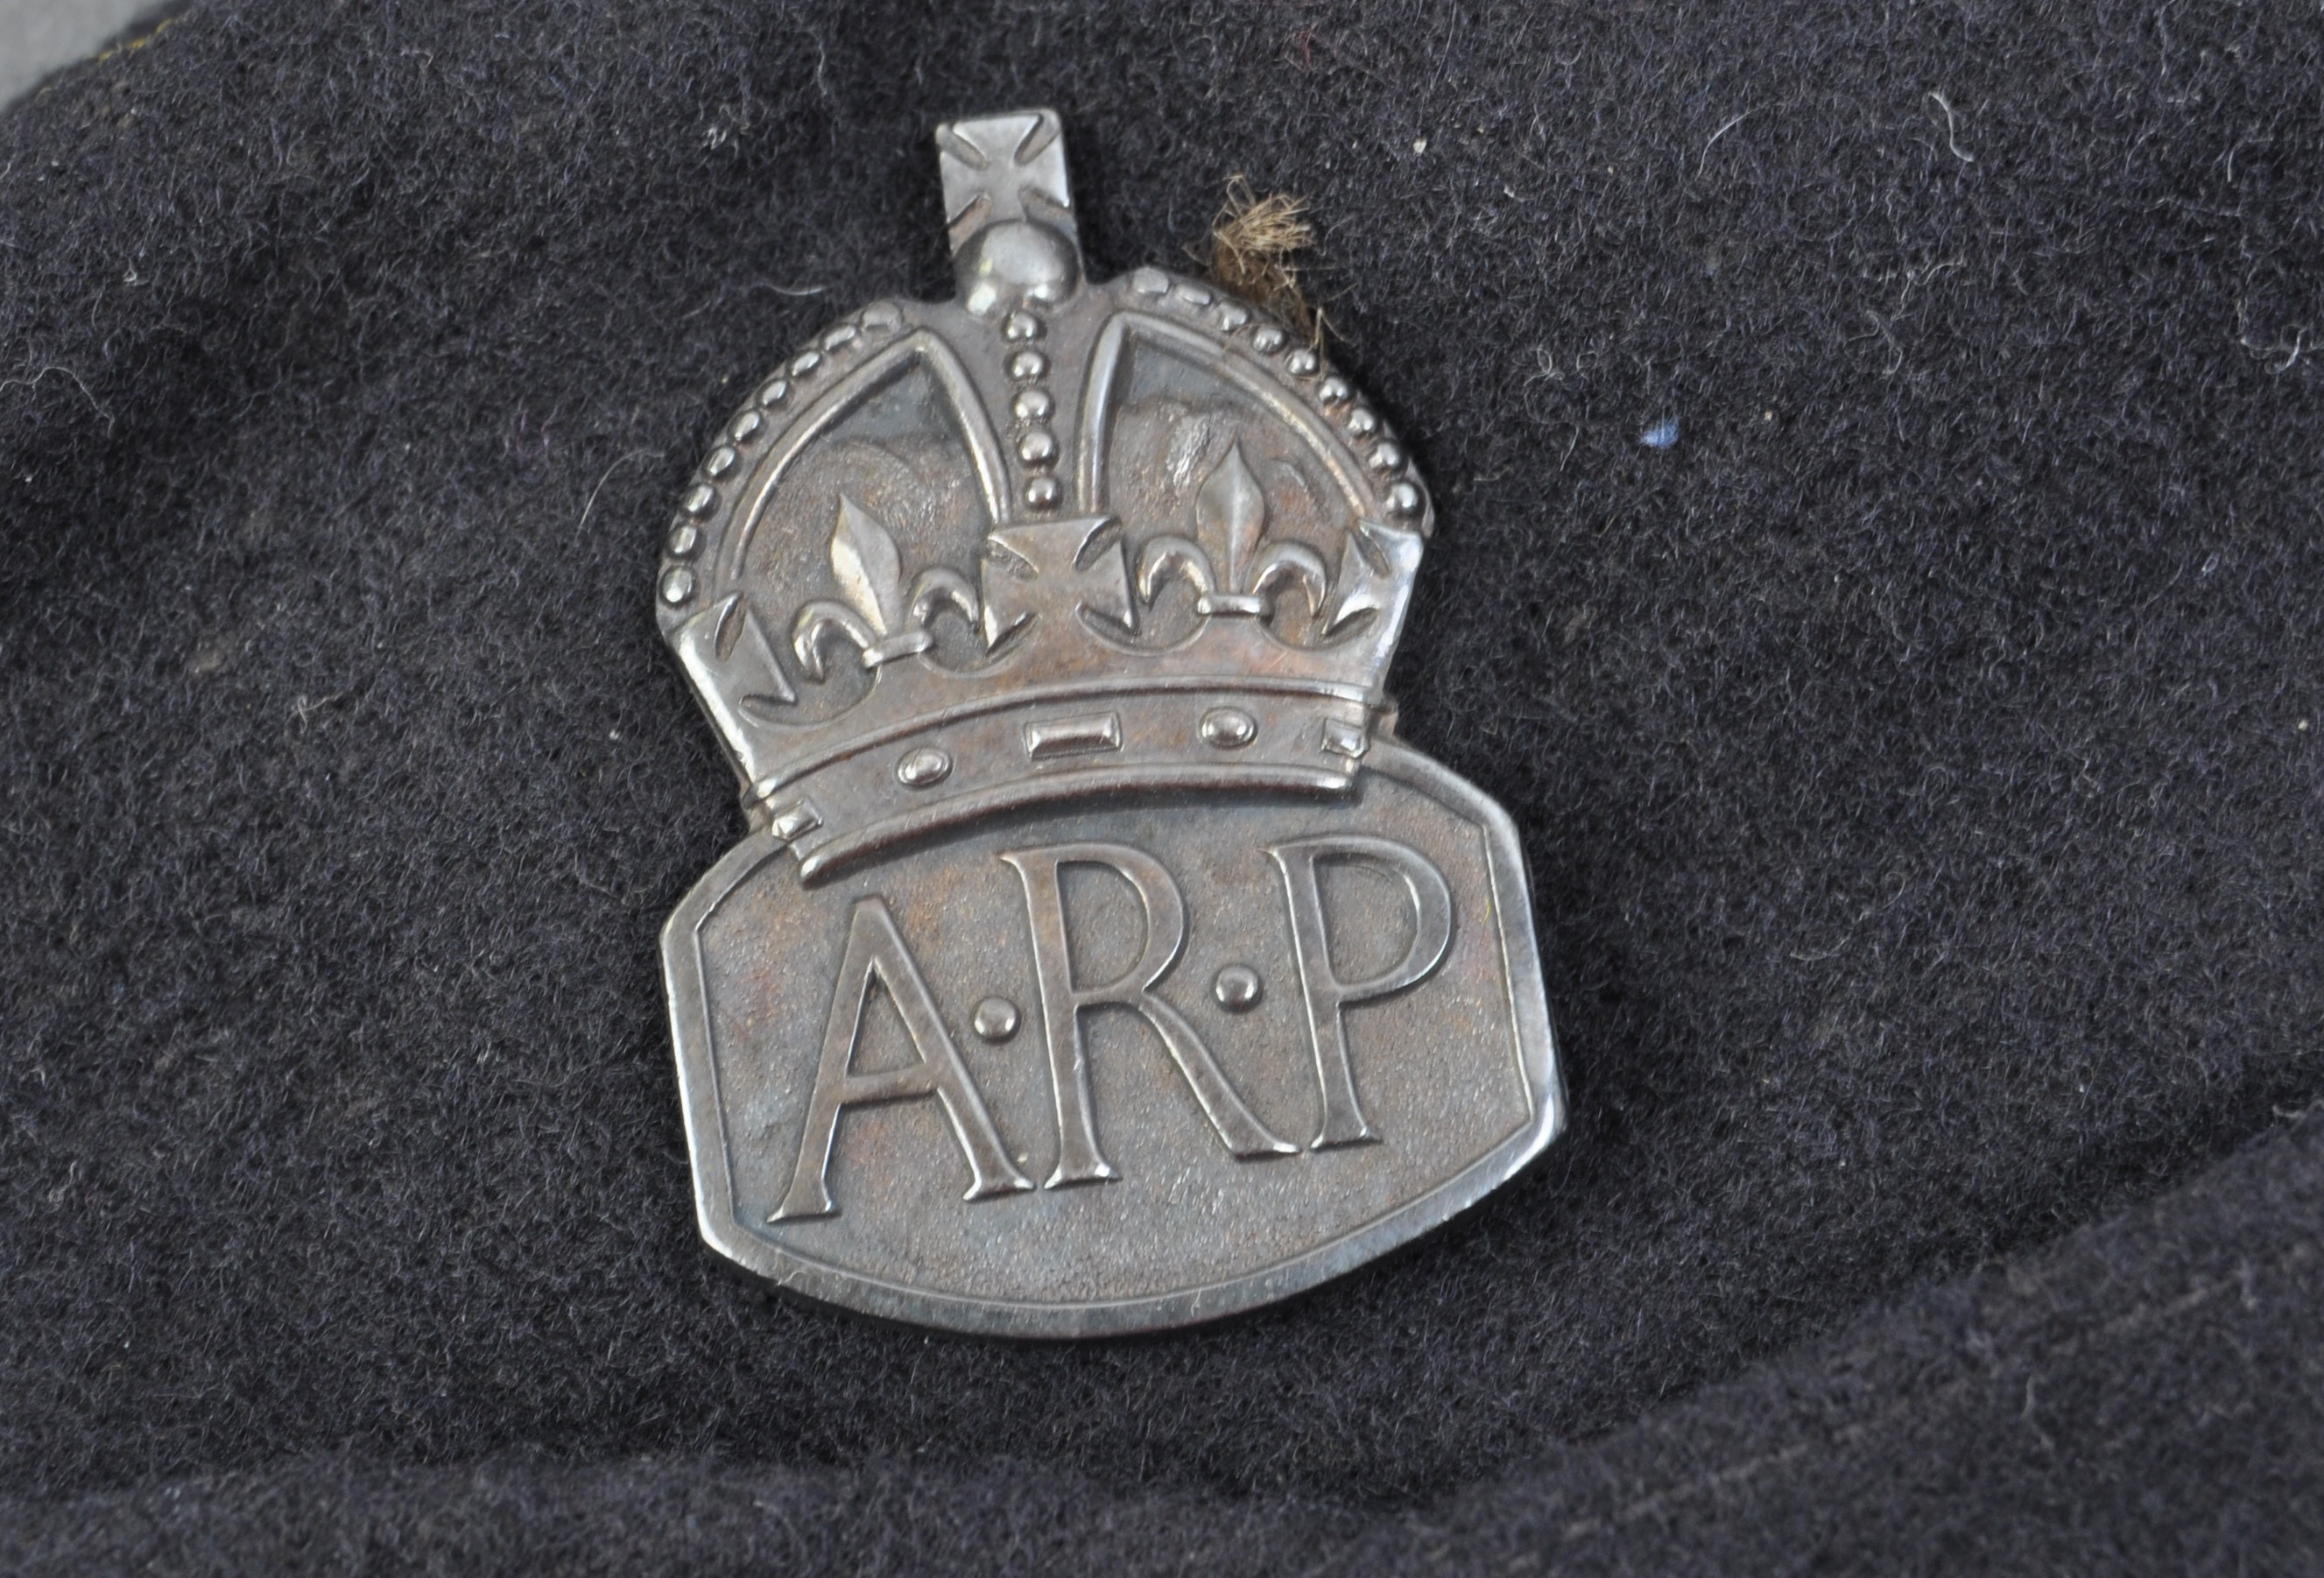 SECOND WORLD WAR AIR RAID PRECAUTIONS OFFICERS SIDE CAP - Image 3 of 9